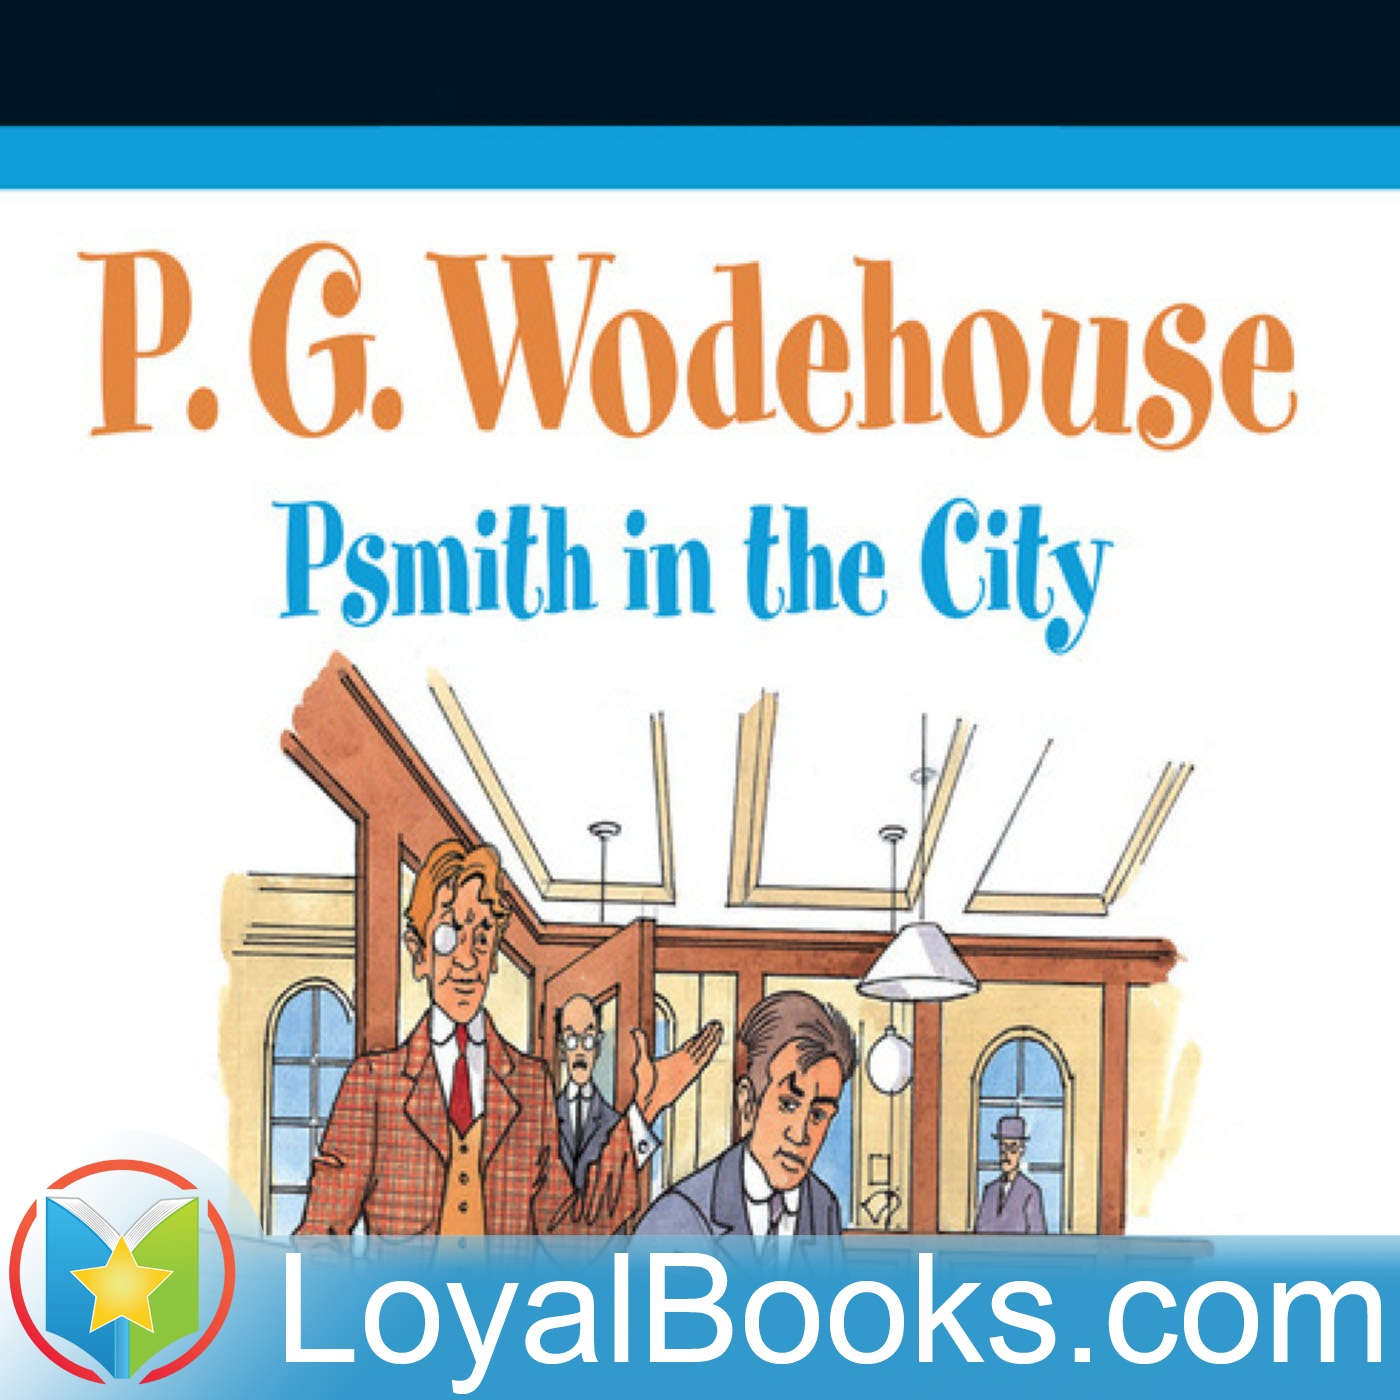 <![CDATA[Psmith in the City by P. G. Wodehouse]]>